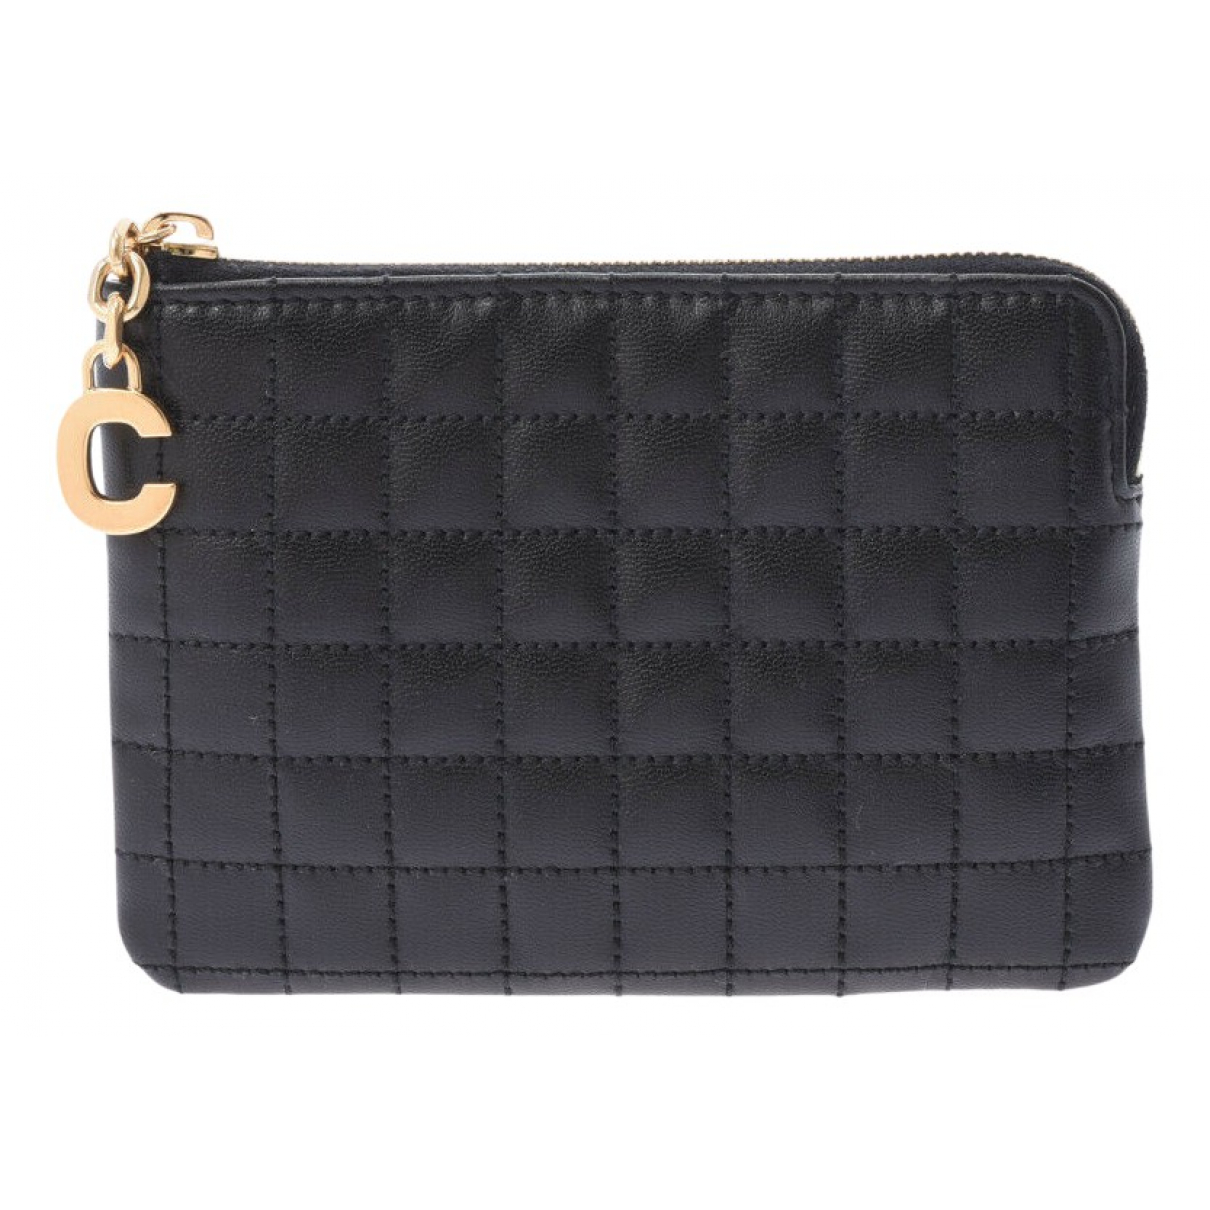 Celine N Black Leather Purses, wallet & cases for Women N